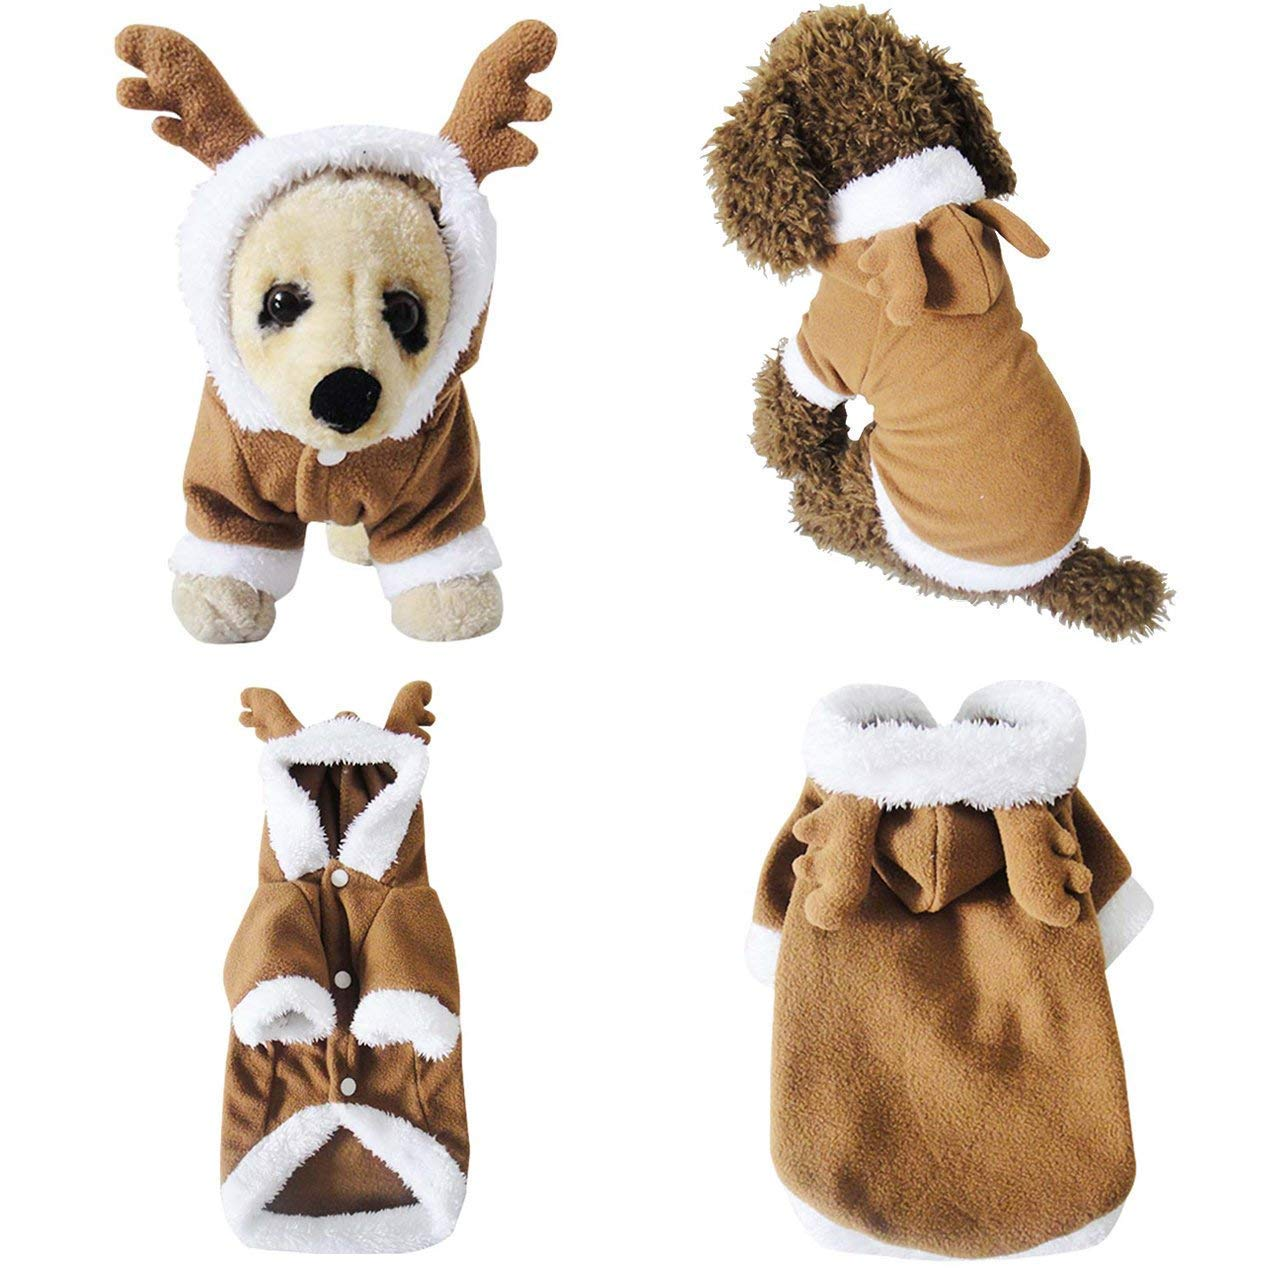 M for 11.0\ Mogoko Dog Cat Christmas Reindeer Costume, Funny Pet Elk Costumes Cosplay Dress, Puppy Fleece Outfits Warm Hoodie Animal Festival Apparel Clothes (M Size)